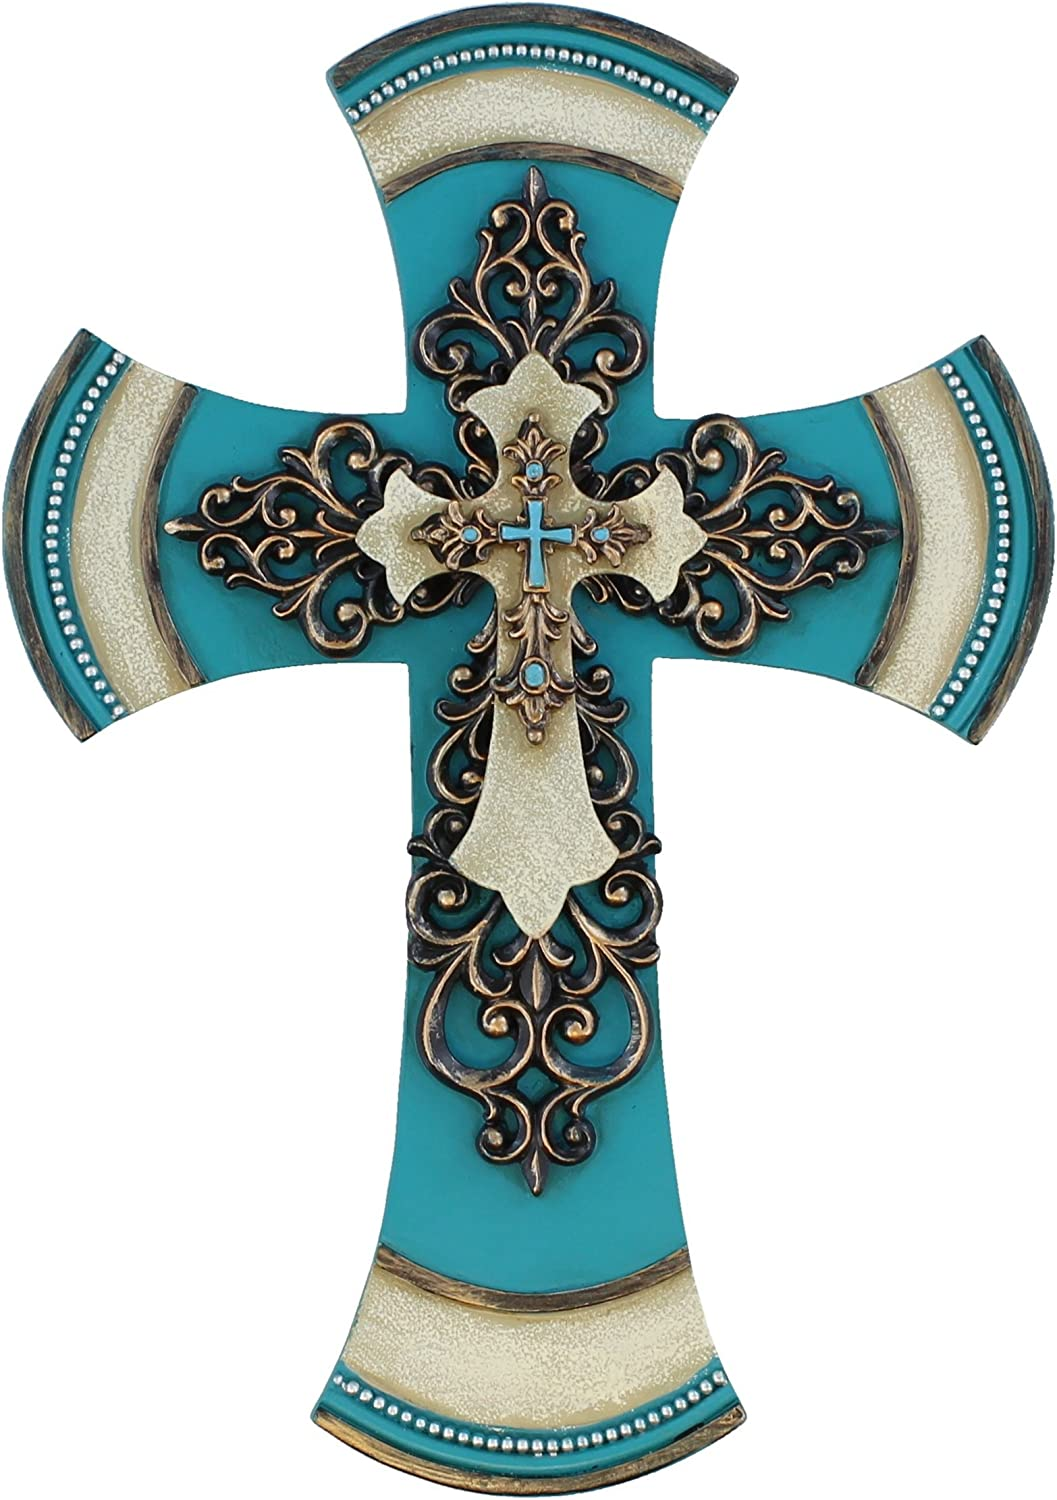 "Old River Outdoors 11 1/2"" Decorative Layered Tuscan Wall Cross Scrolly Fleur De Lis - Teal"